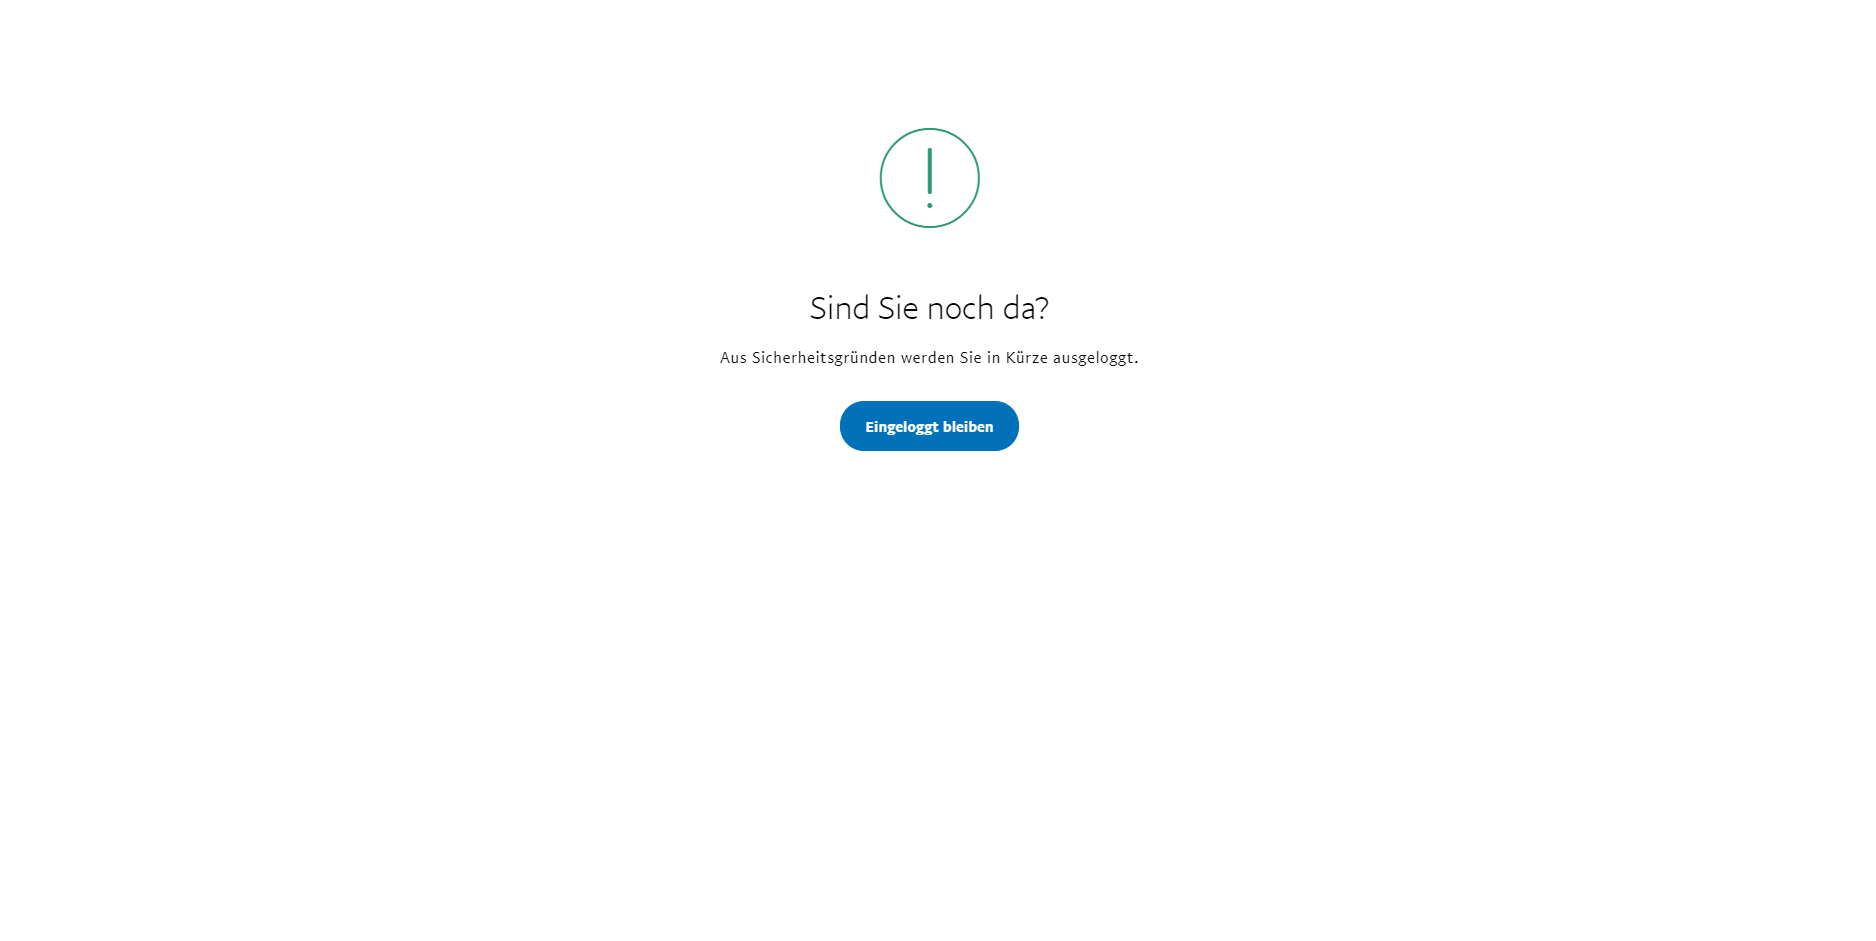 UX Wiriting paypal before logout message_2